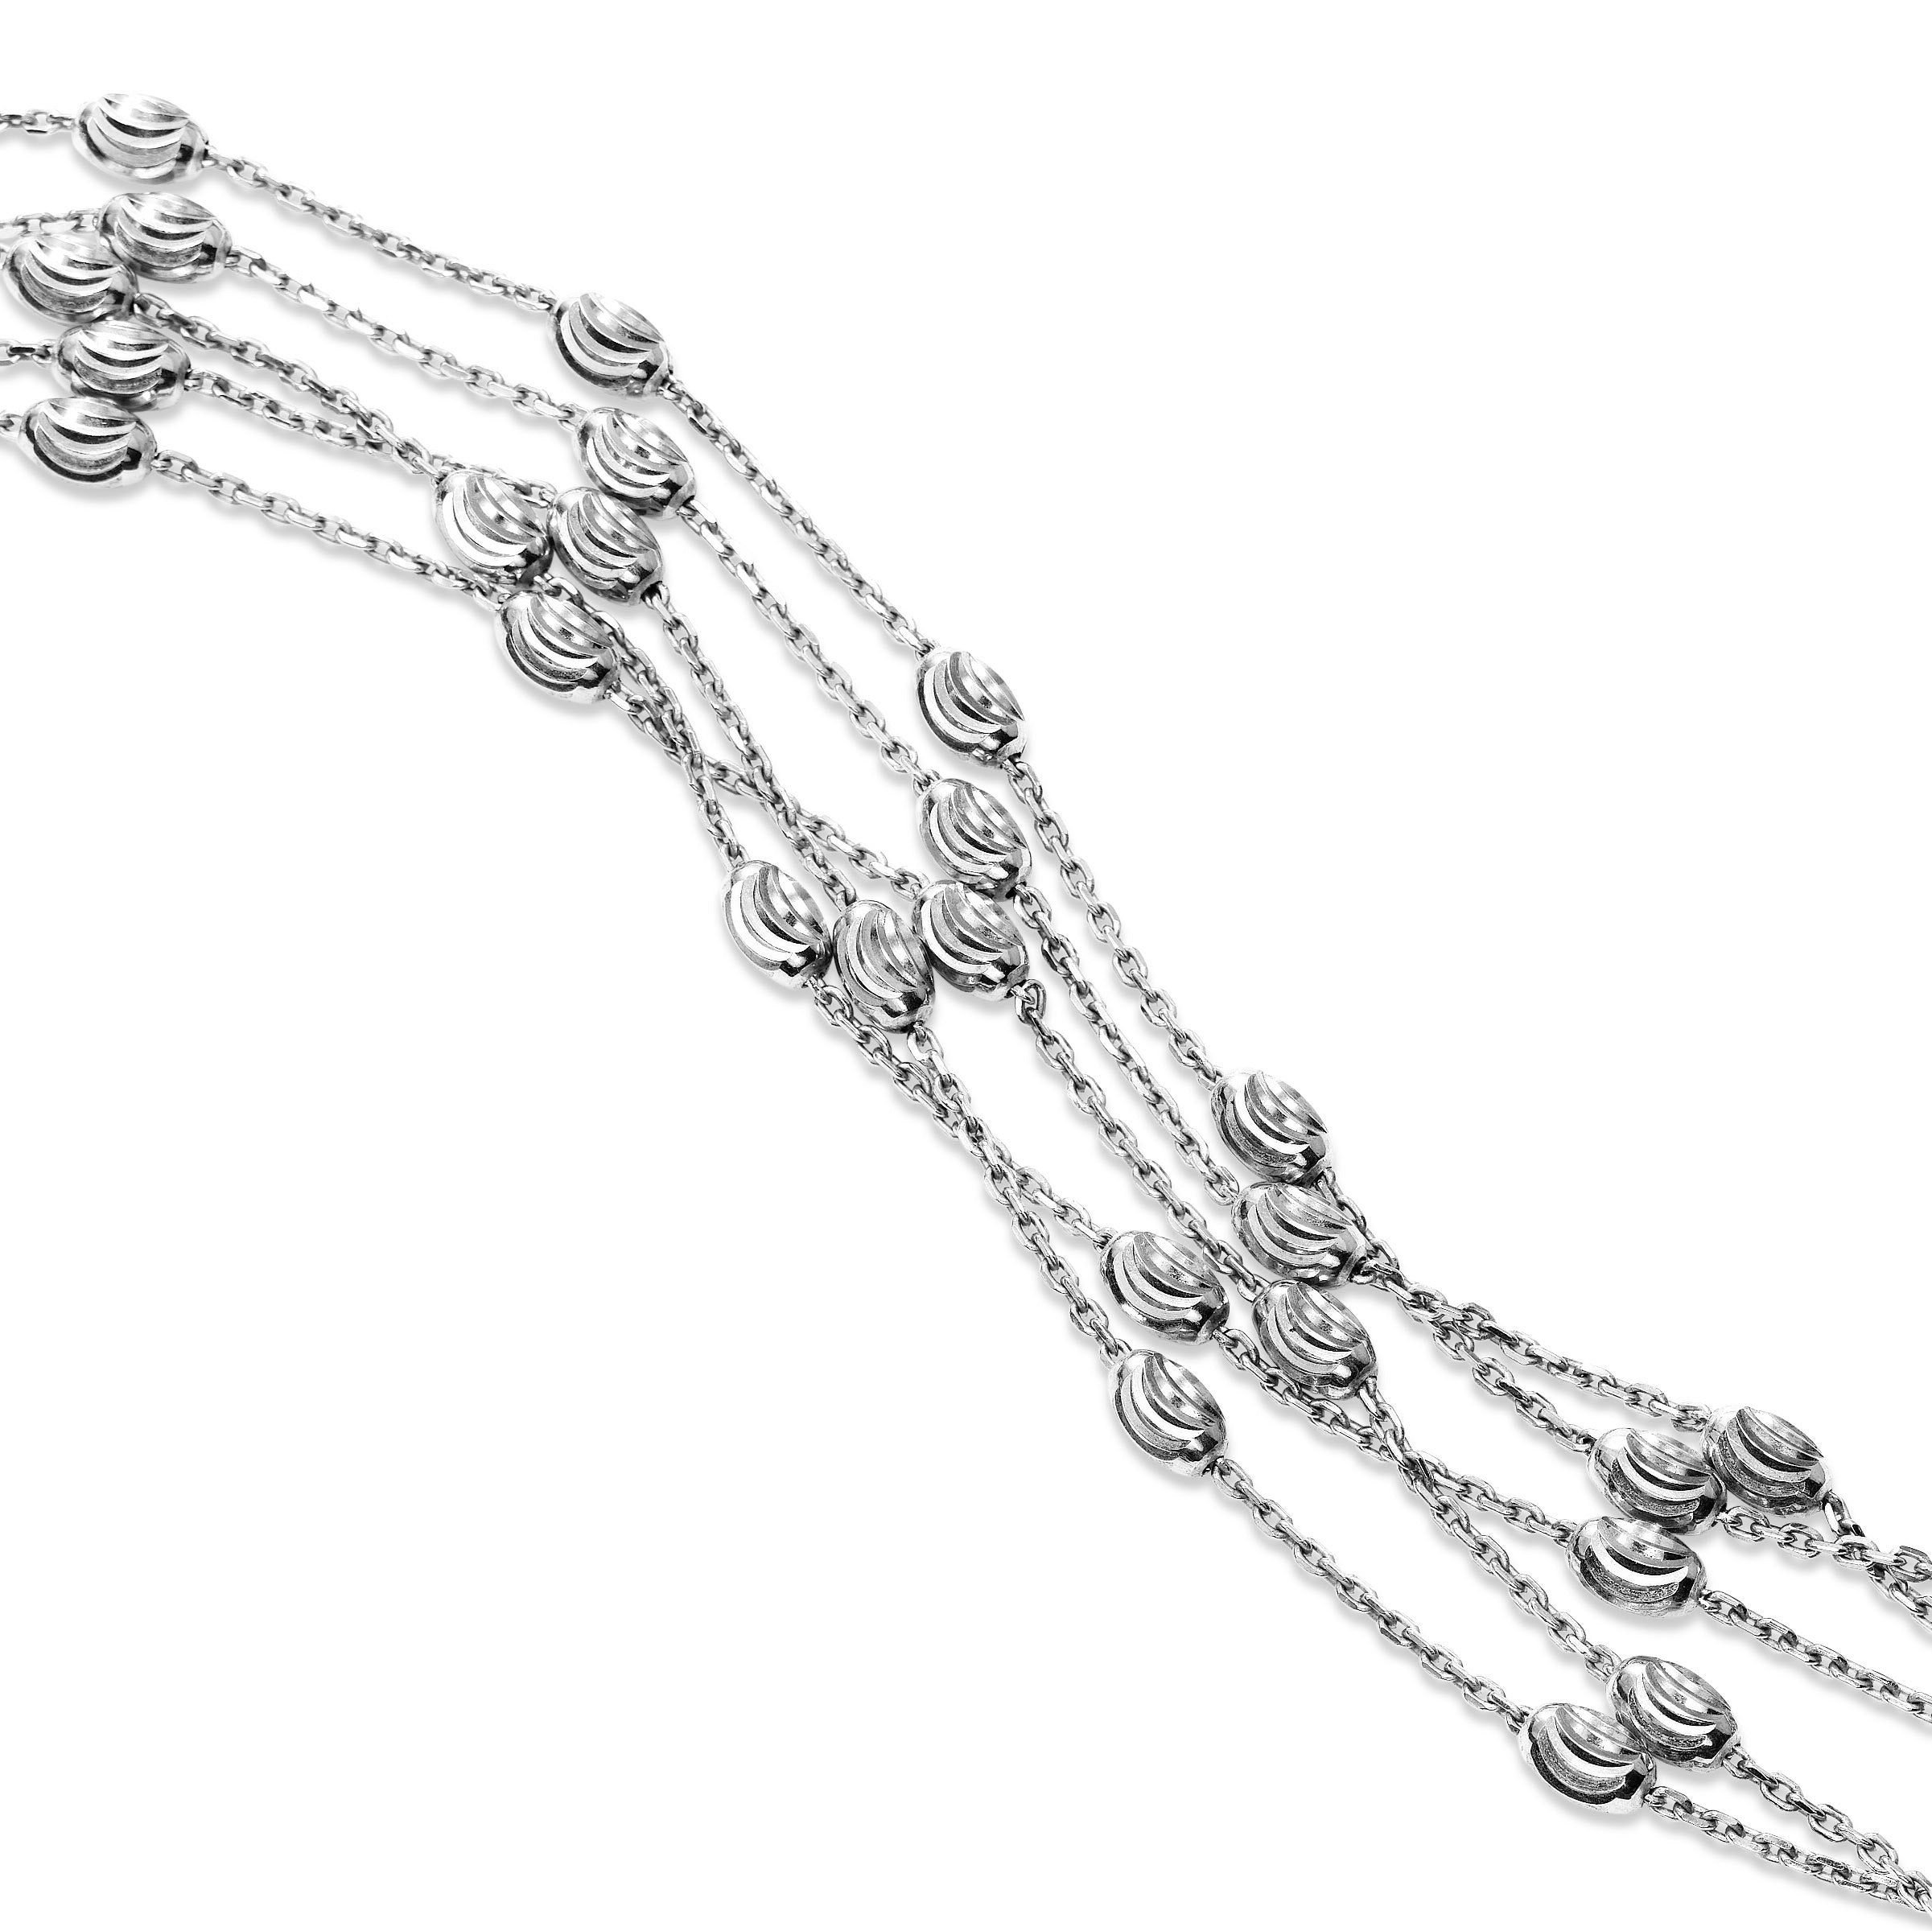 Five Strand Bead Bracelet, Sterling Silver with Rhodium Plating